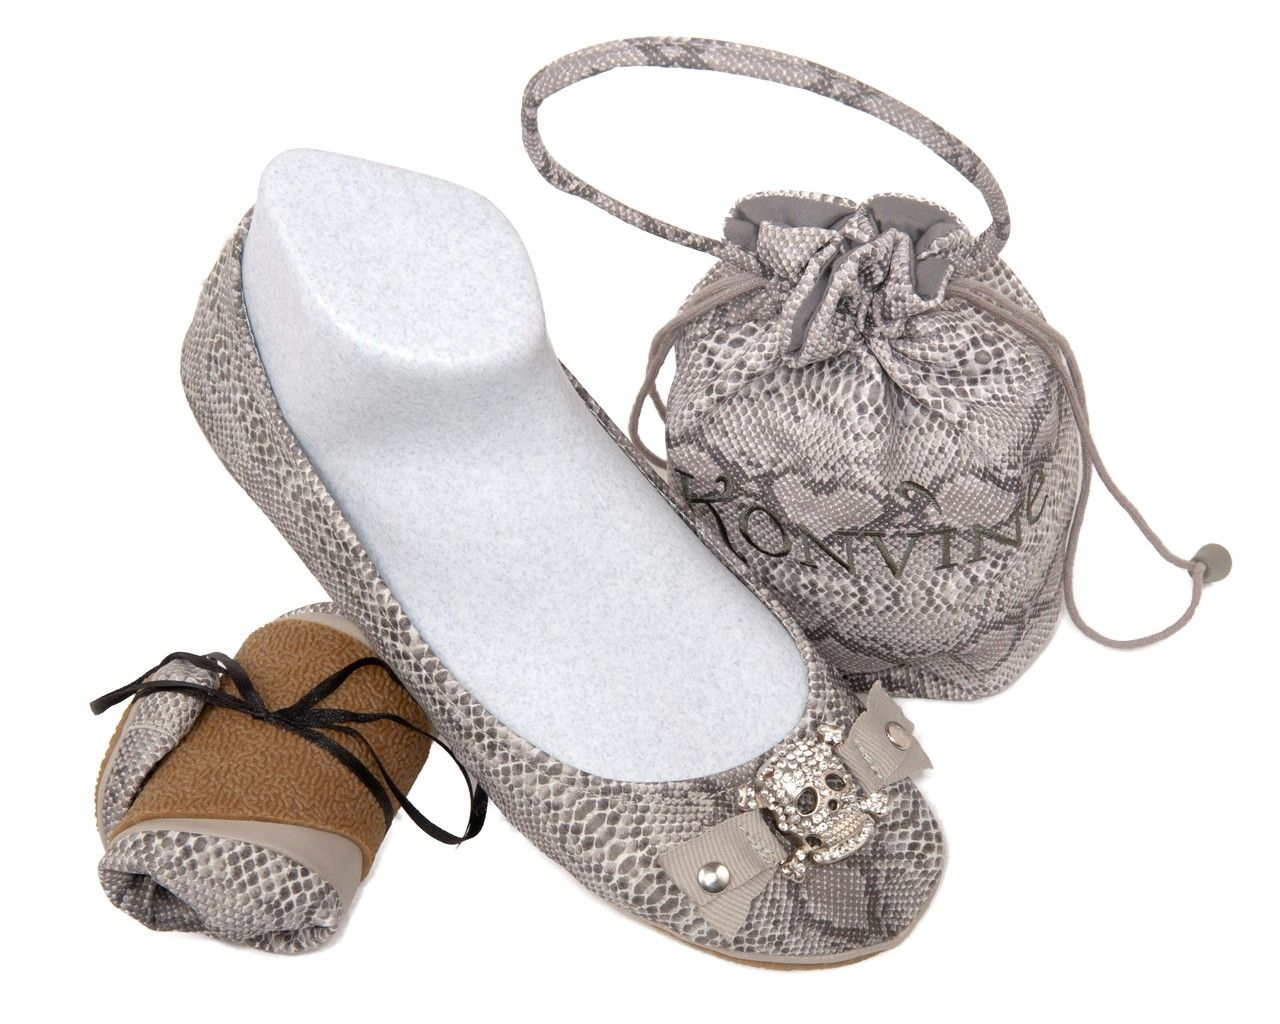 Snakeskin RollUps with Skull Ballerina shoes, Up shoes